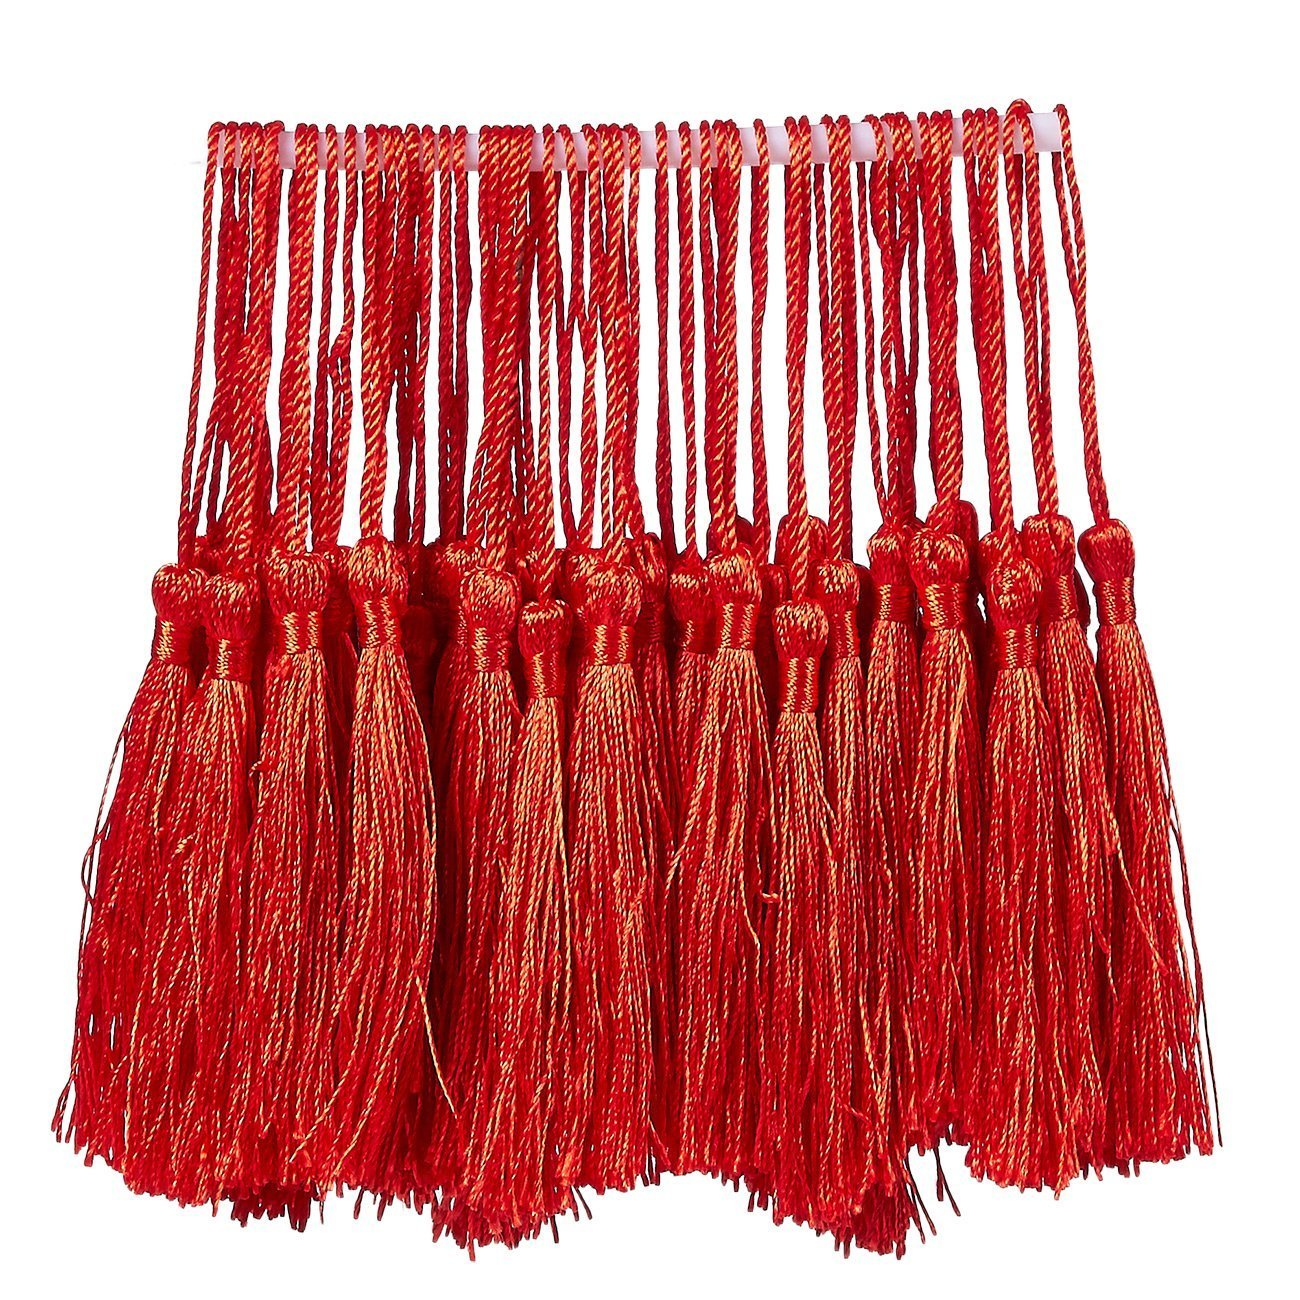 DIY Jewelry Making Bookmark Tassels 0.1 x 5.4 x 0.1 inches Ideal for Handmade Craft Accessory Black 150-Pack Silky Floss Tassel Pendant with 2.3-inch Cord Loop Home Decoration Souvenir